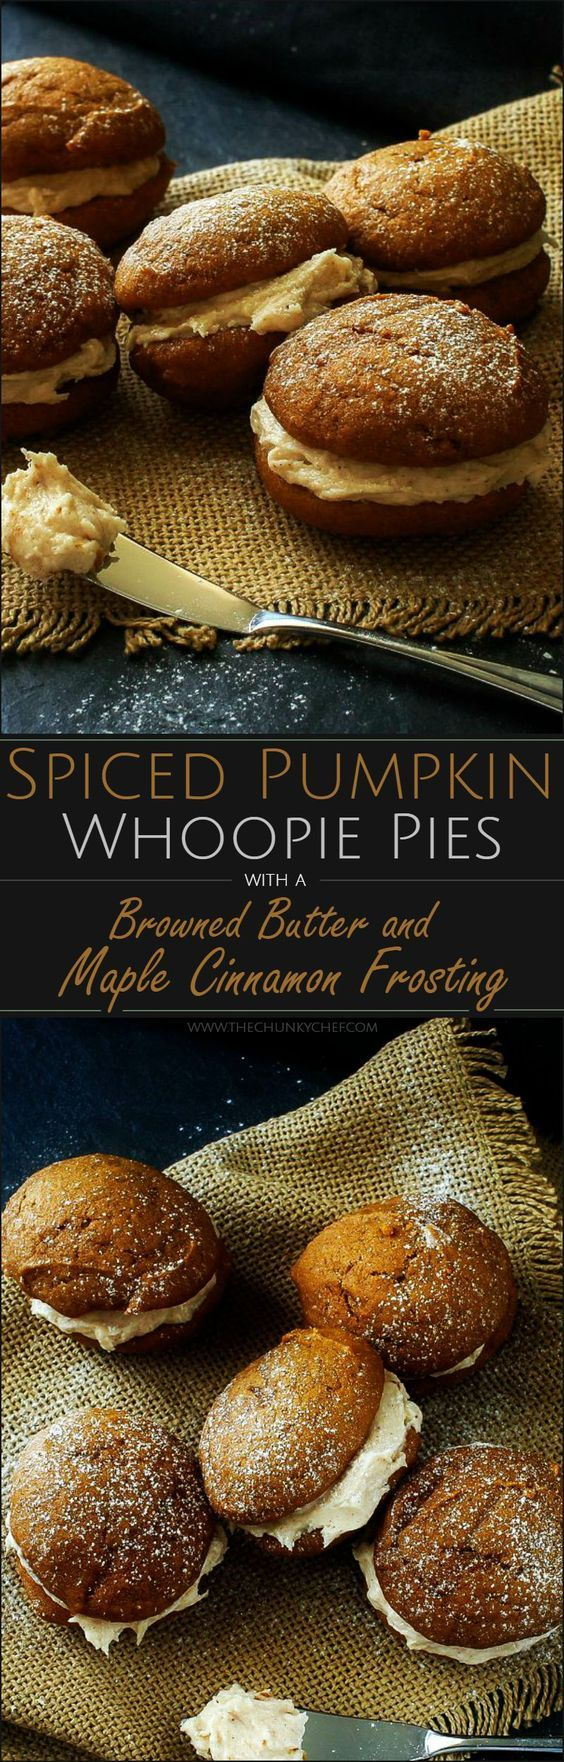 Spiced Pumpkin Whoopie Pies. Soft and light spiced pumpkin cookies sandwiched together with a decadent yet easy to make browned butter maple cinnamon frosting!